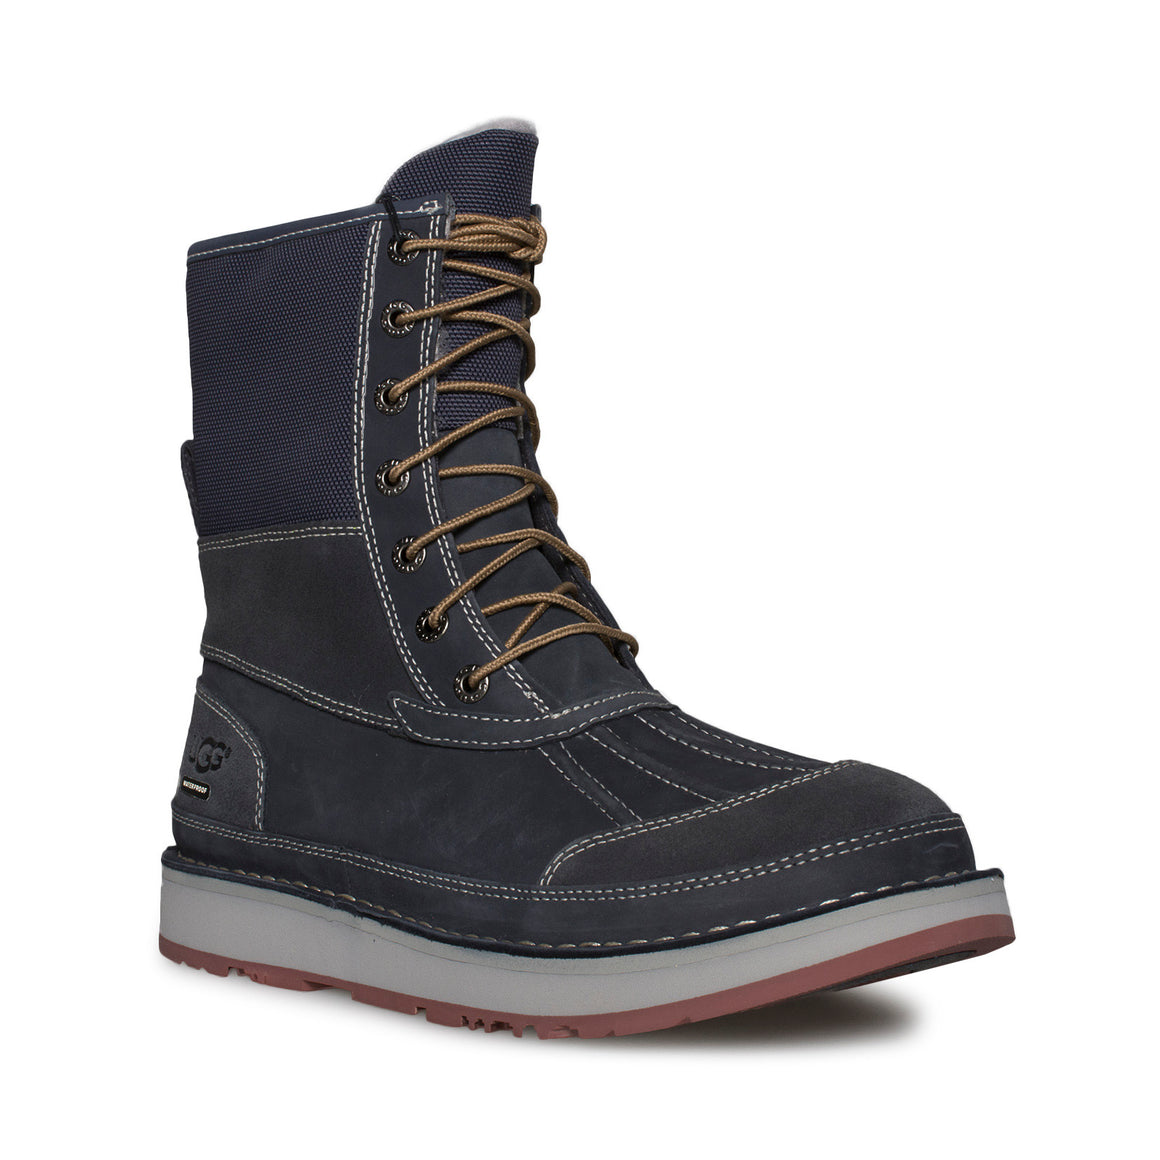 UGG Avalanche Butte True Navy Boots - Men's